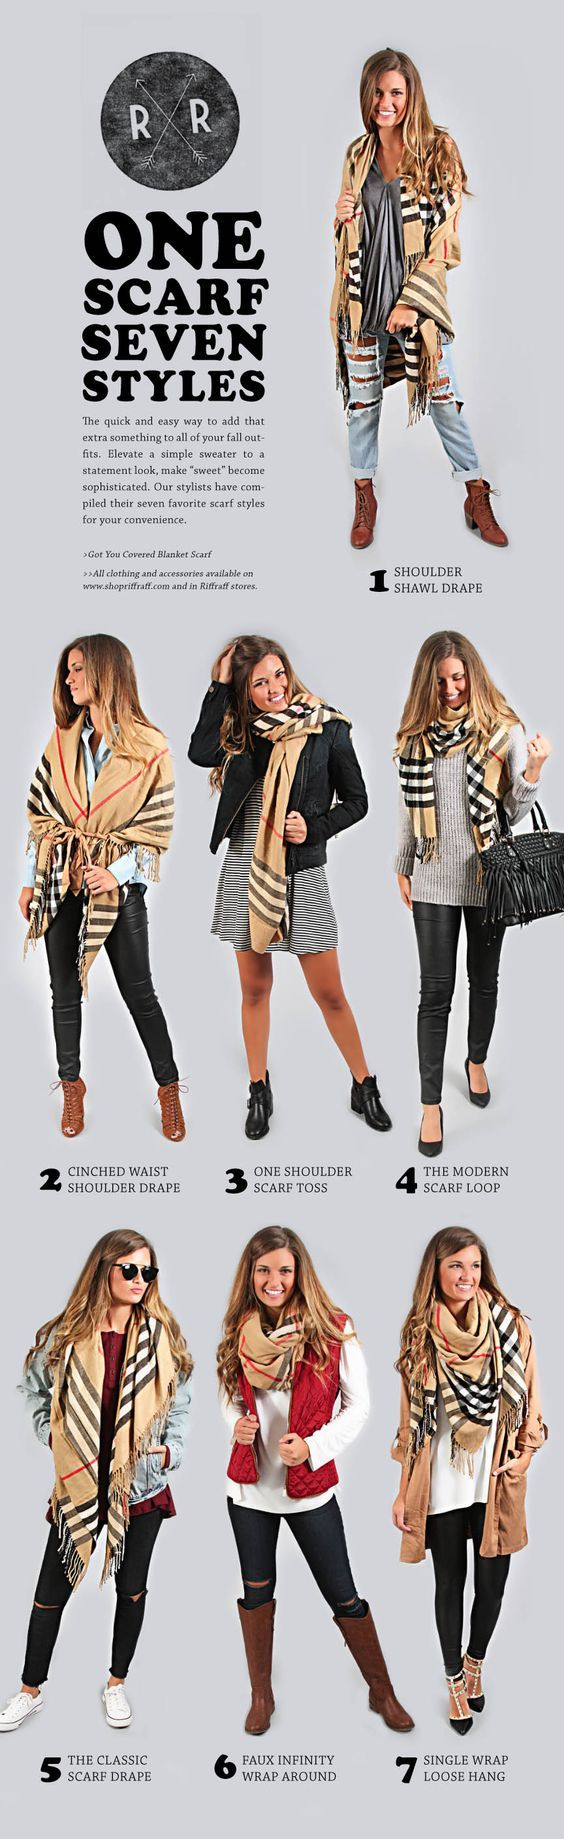 burberry scarf outlet 42k6  Fashion Inspiration